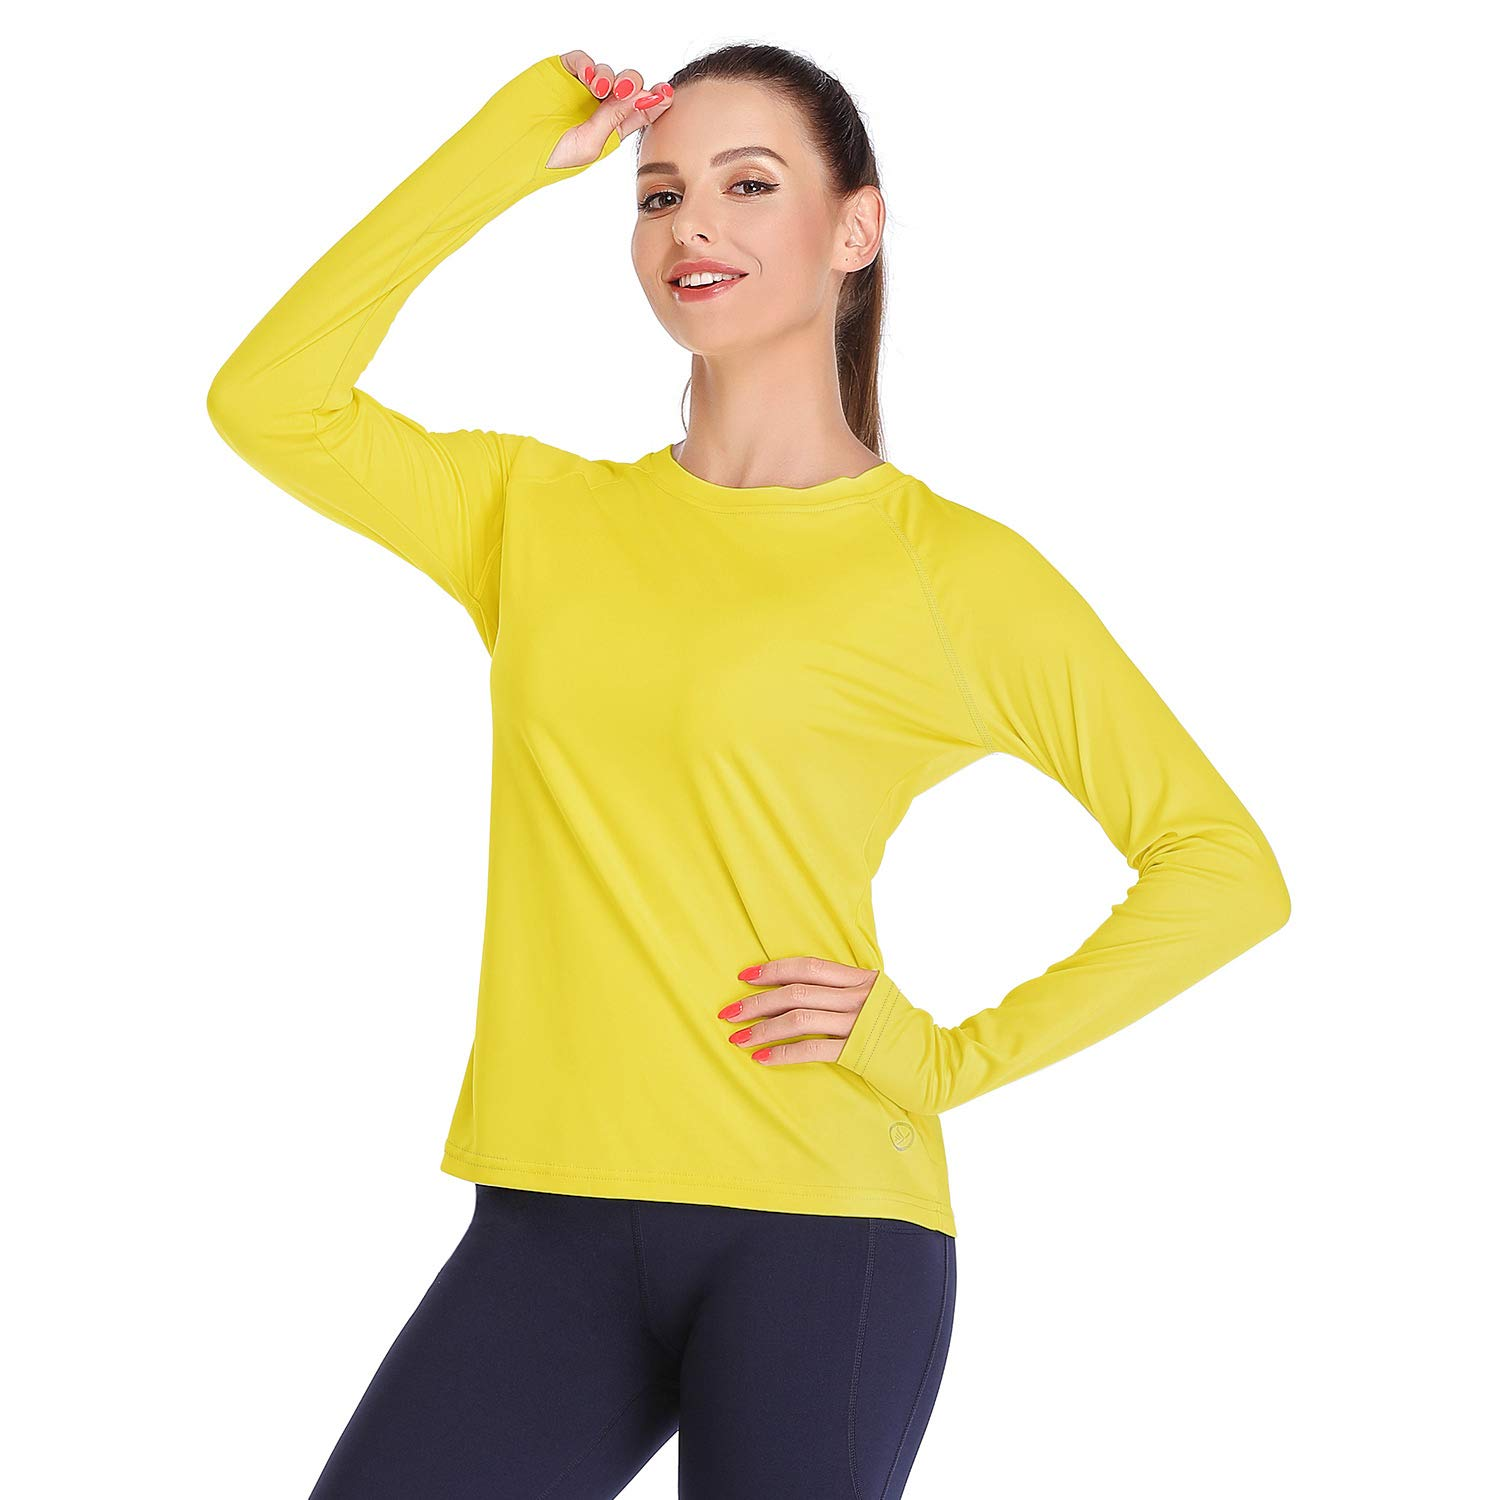 DAYOUNG Womens UPF 50+ UV Sun Protection Running Hiking Outdoors Performance Long Sleeve T-Shirt Athletic Top with Thumb Hole YWT11-Yellow-XL by DAYOUNG